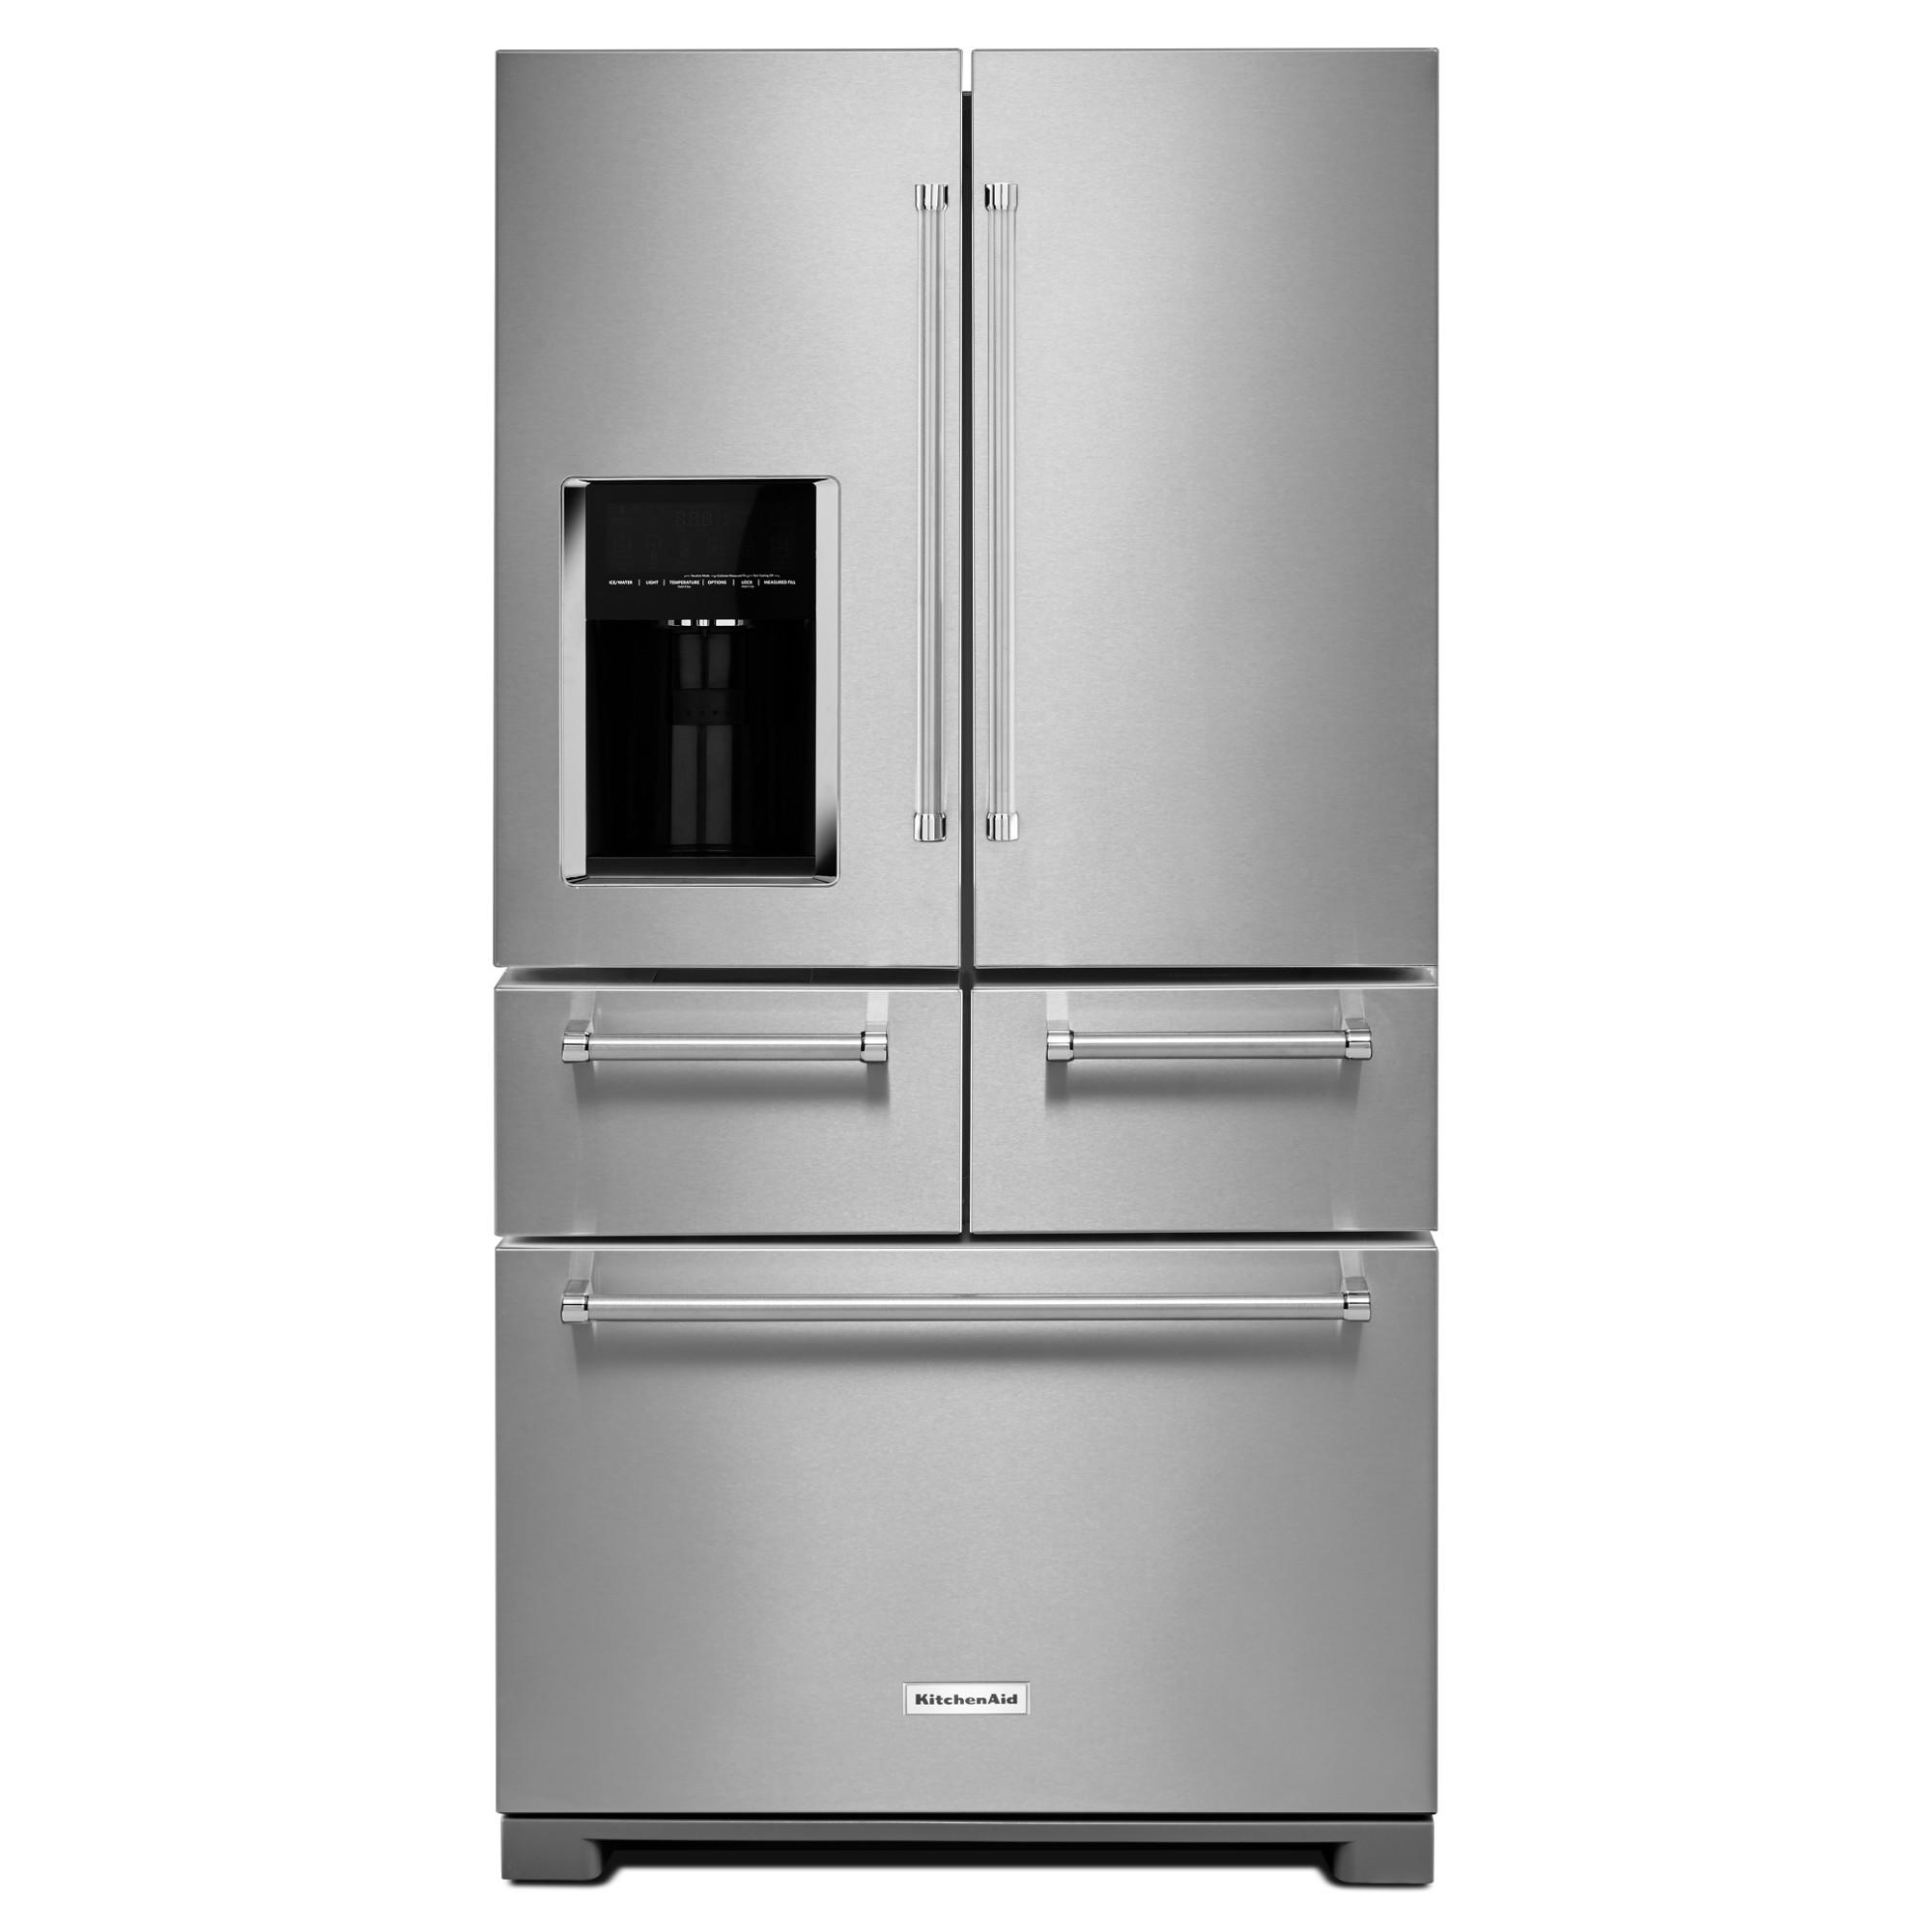 KitchenAid KRMF606ESS 25.8 cu. ft. Multi-Door Freestanding Refrigerator - Stainless Steel